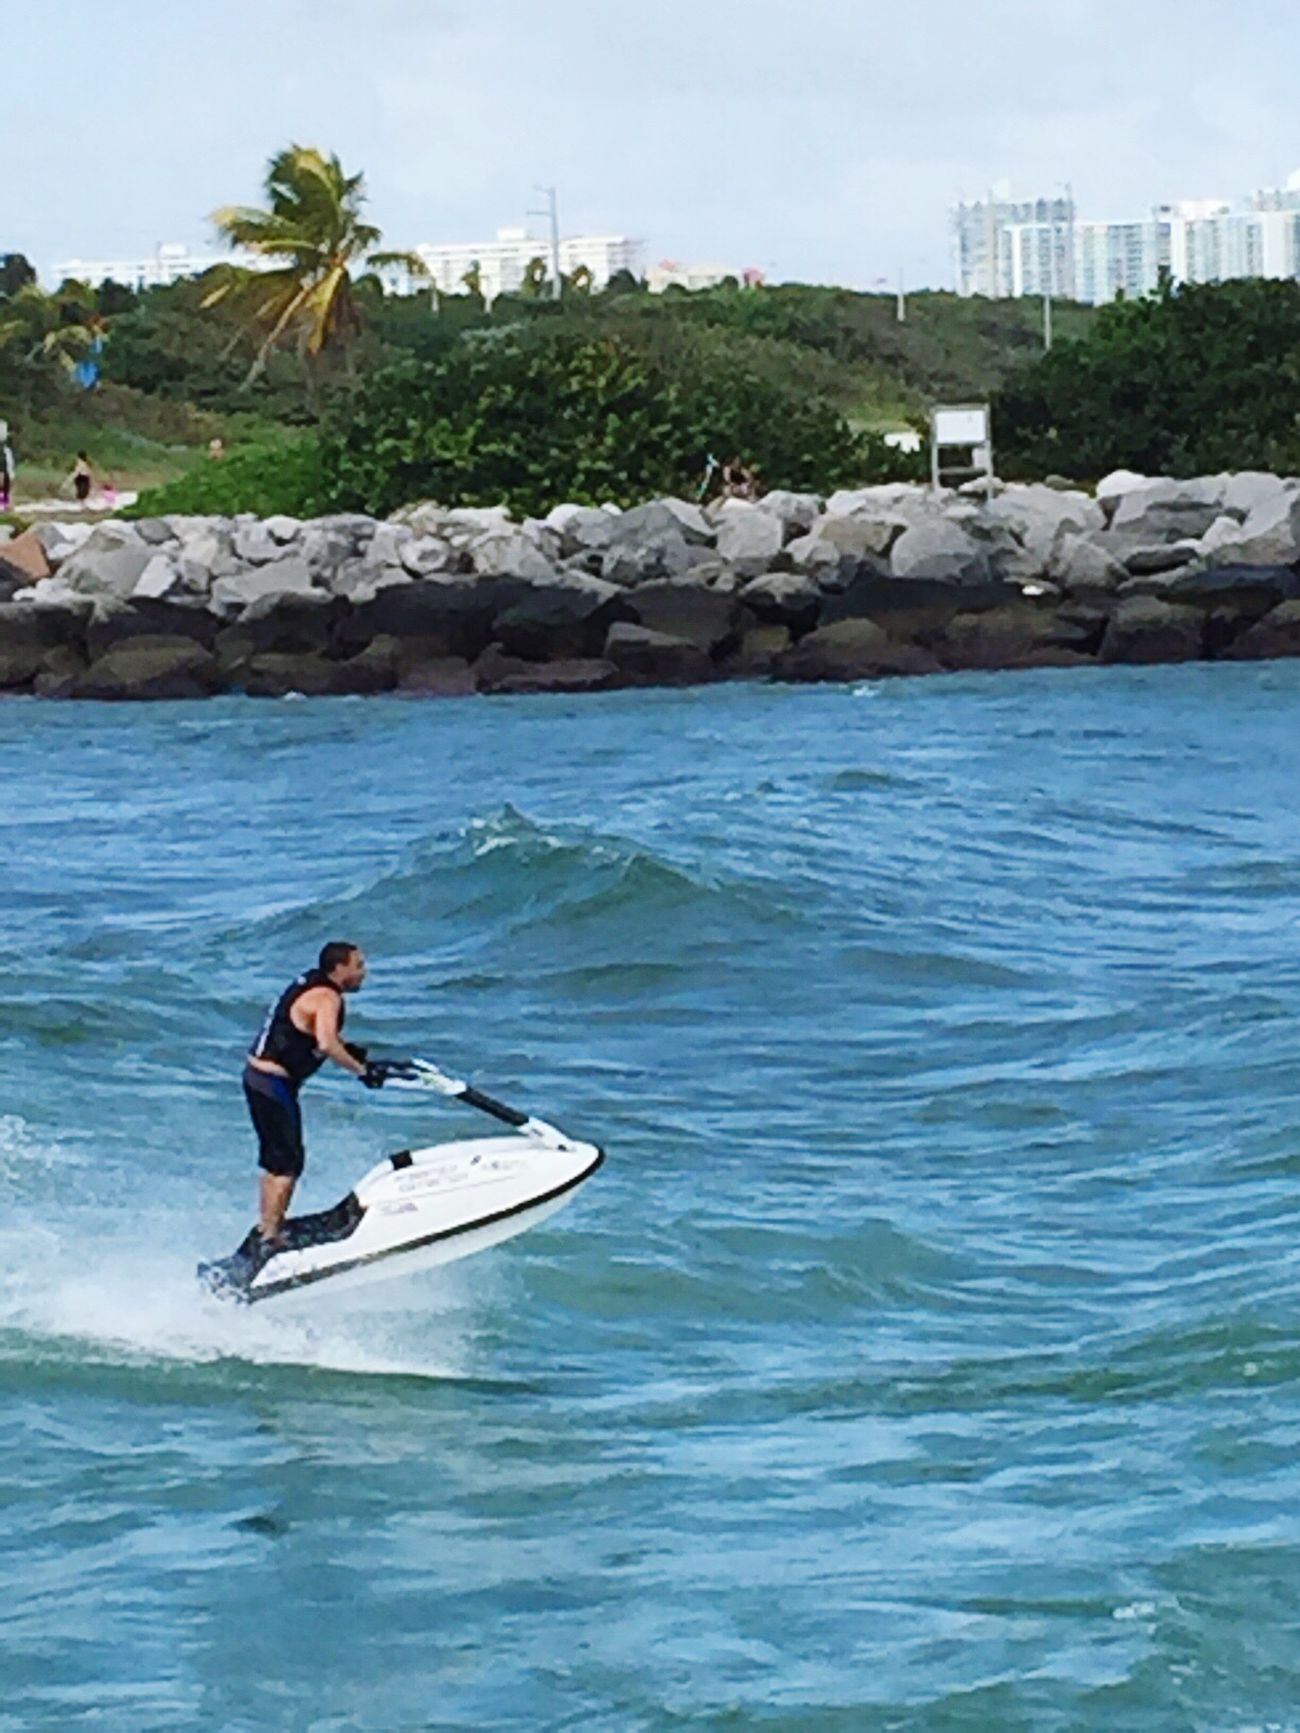 Blue Wave Watersports Jetski Miami Beach Ft Lauderdale Florida Ocean Waves Beachphotography Eyeem Missions